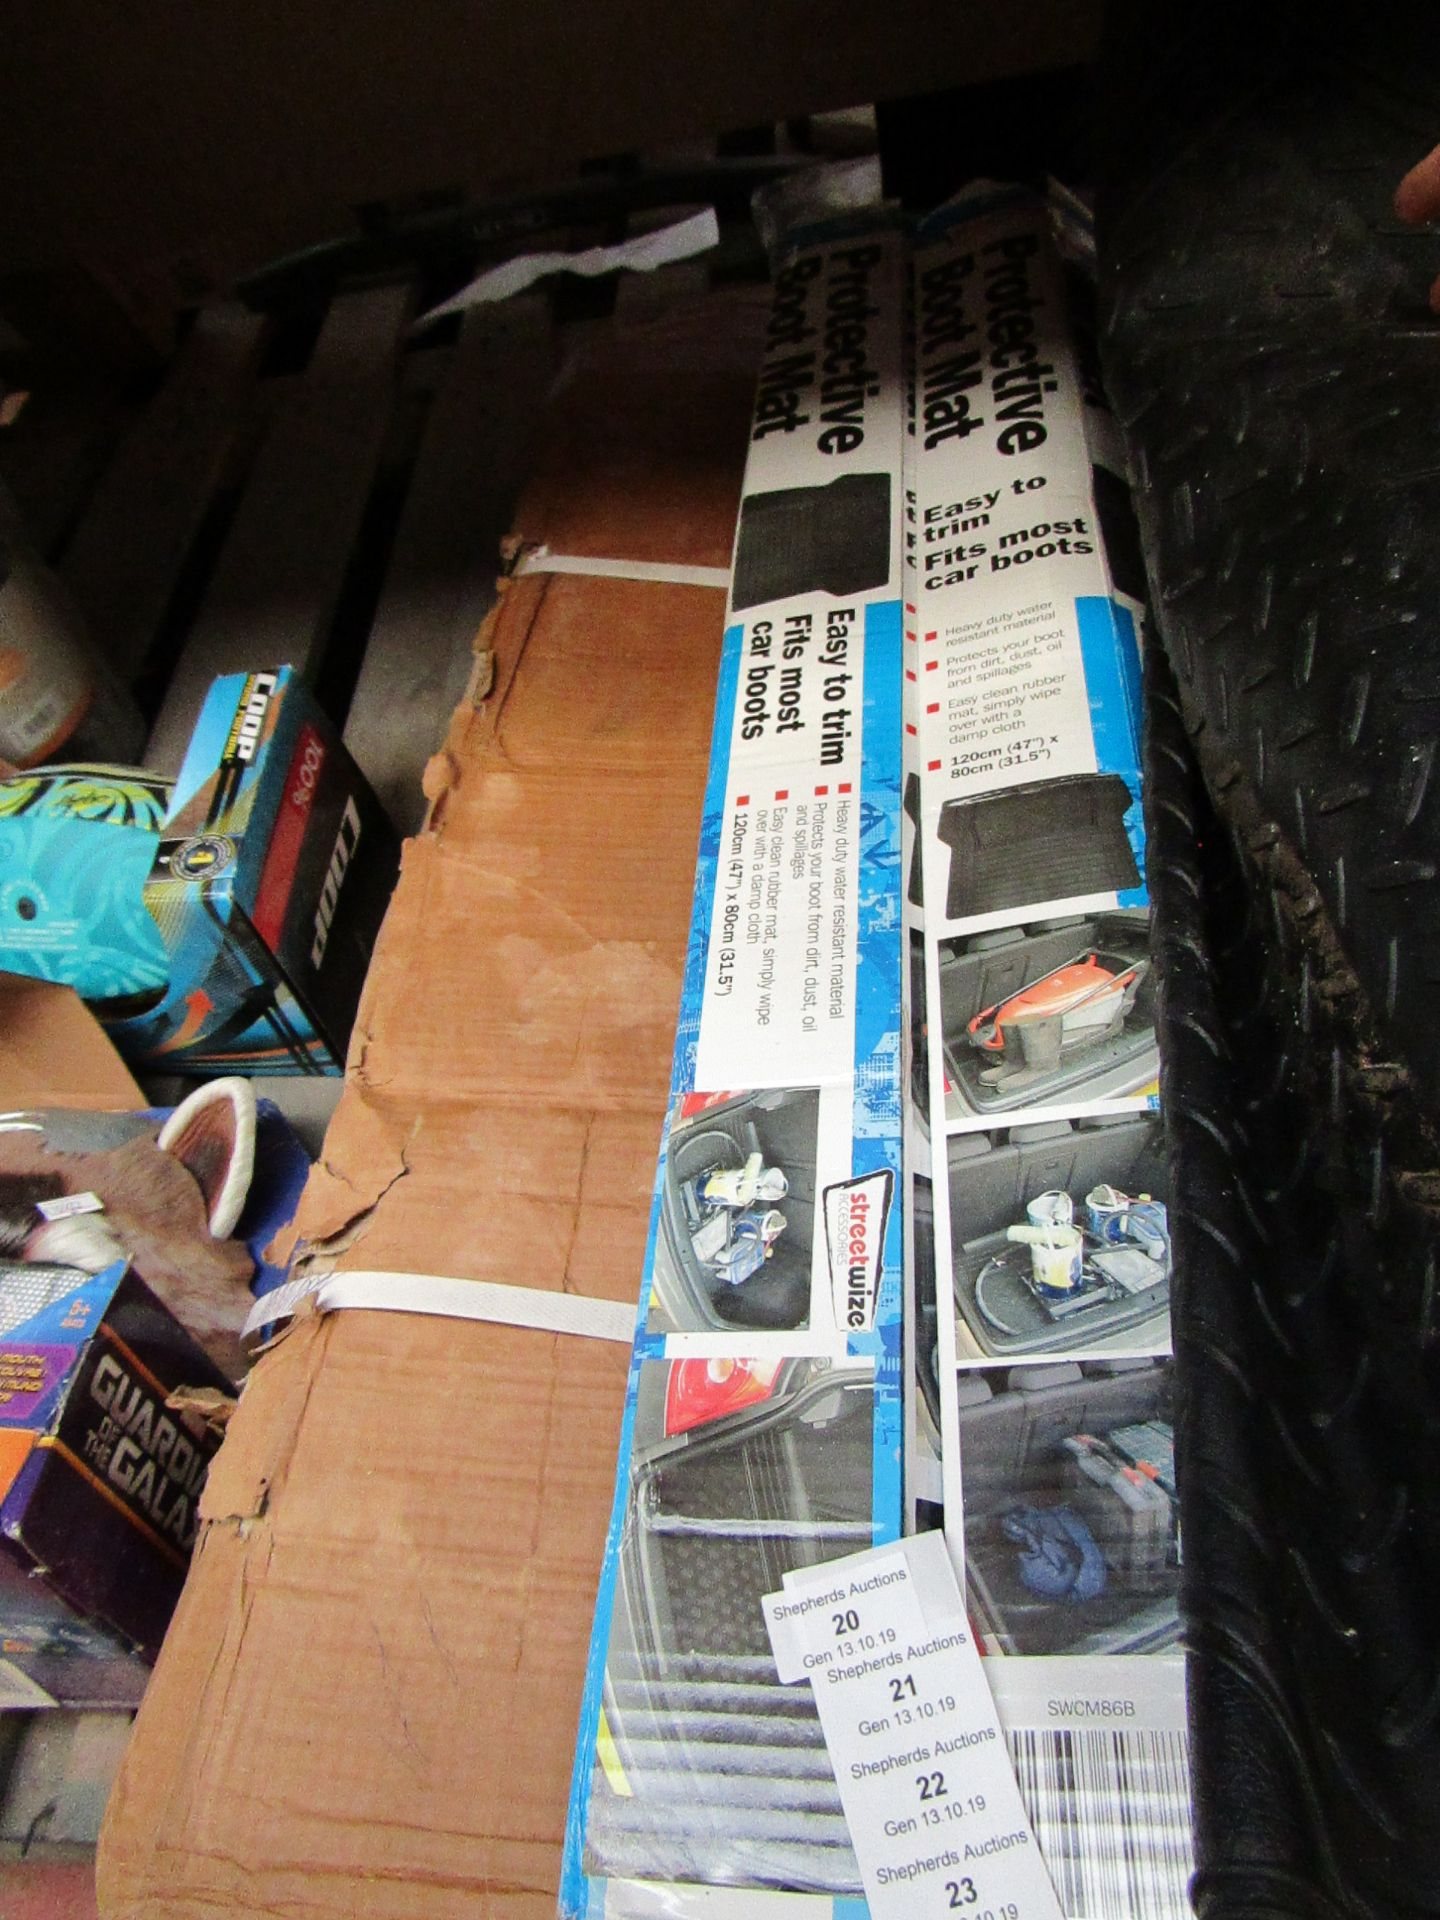 Lot 22 - Streetwize easy trim universal boot mat, unchecked and boxed.